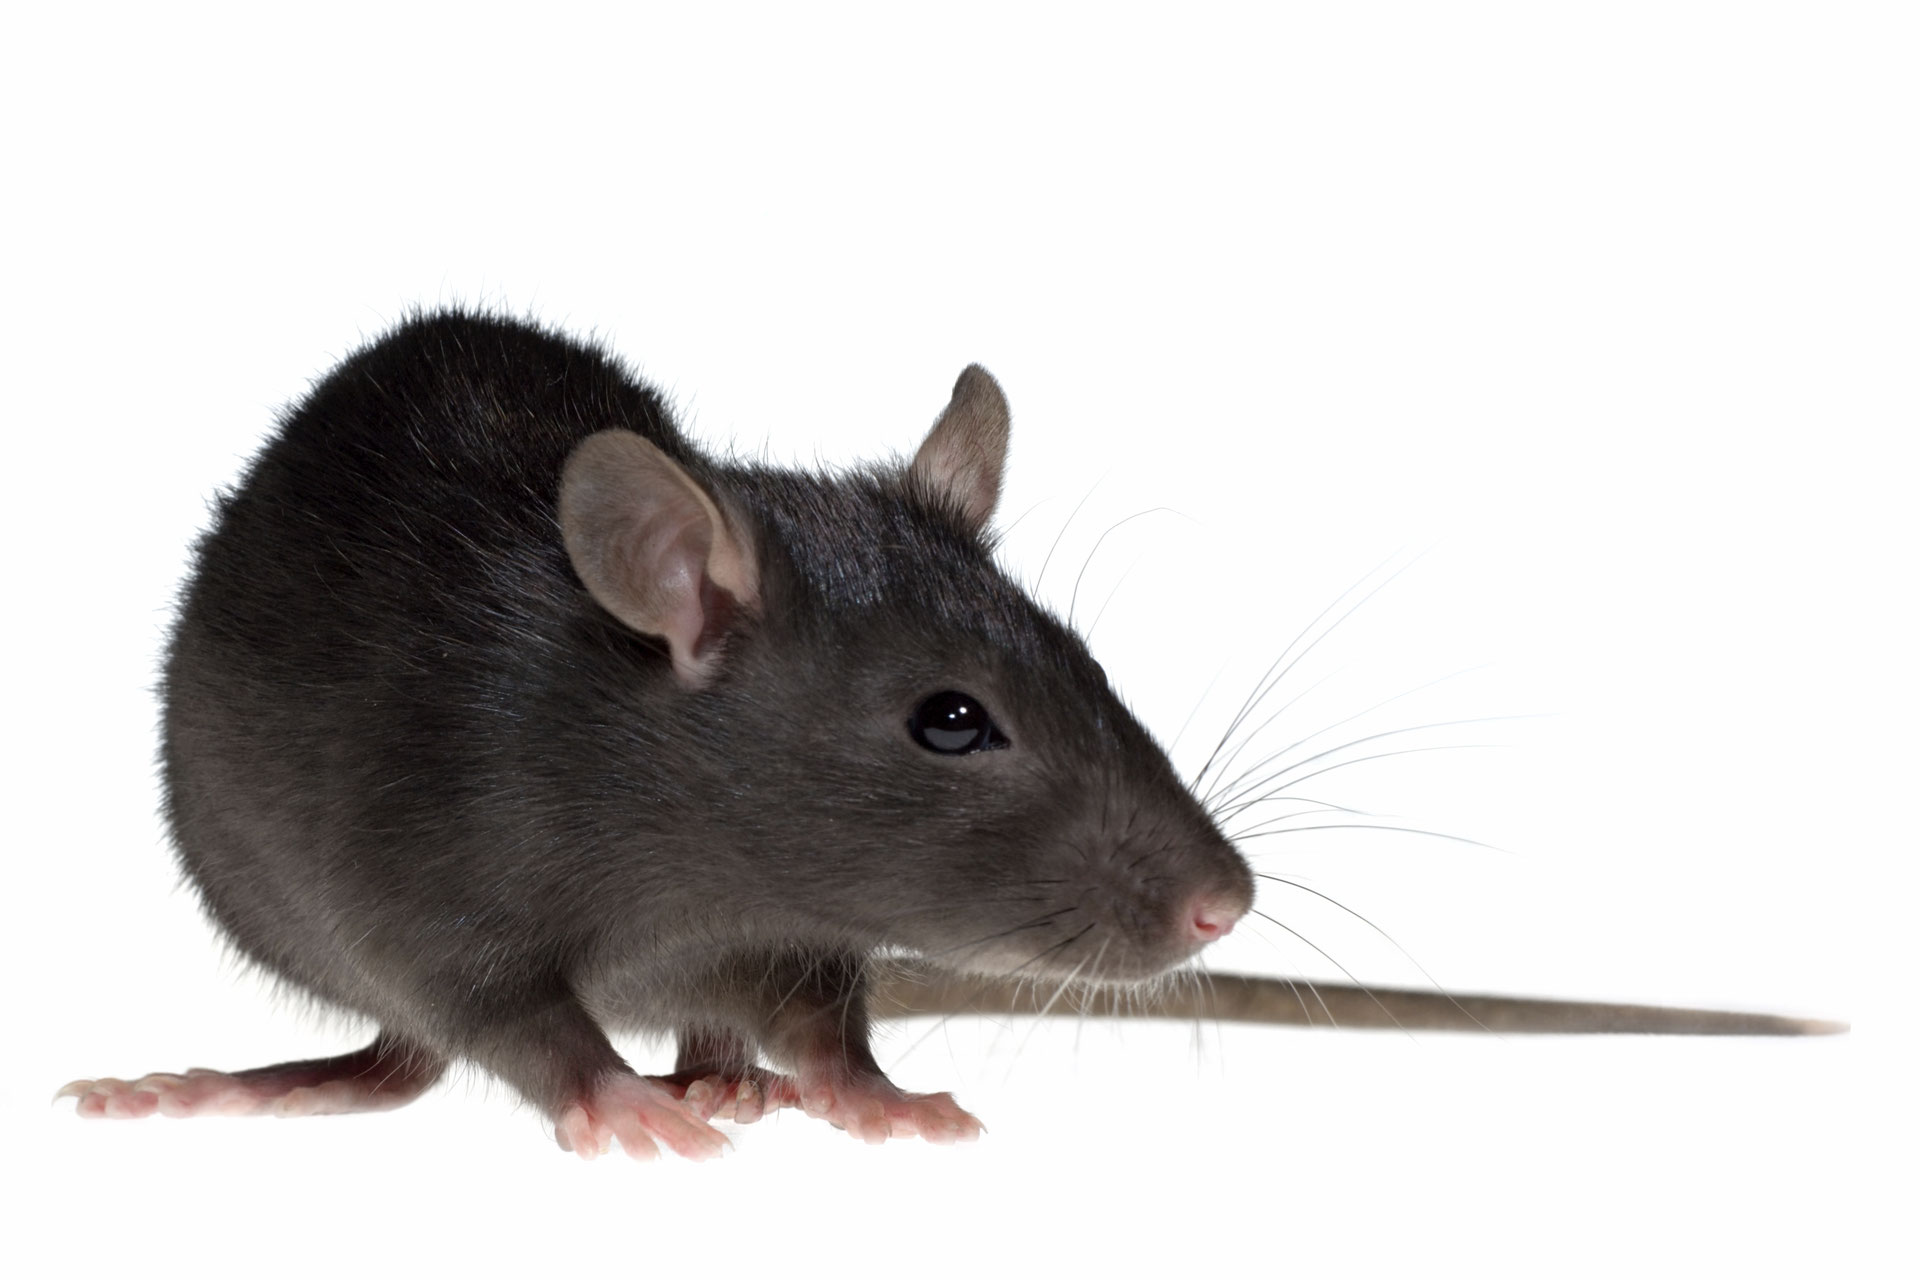 How to get rid of rats from my house and garden? - flowerpotman